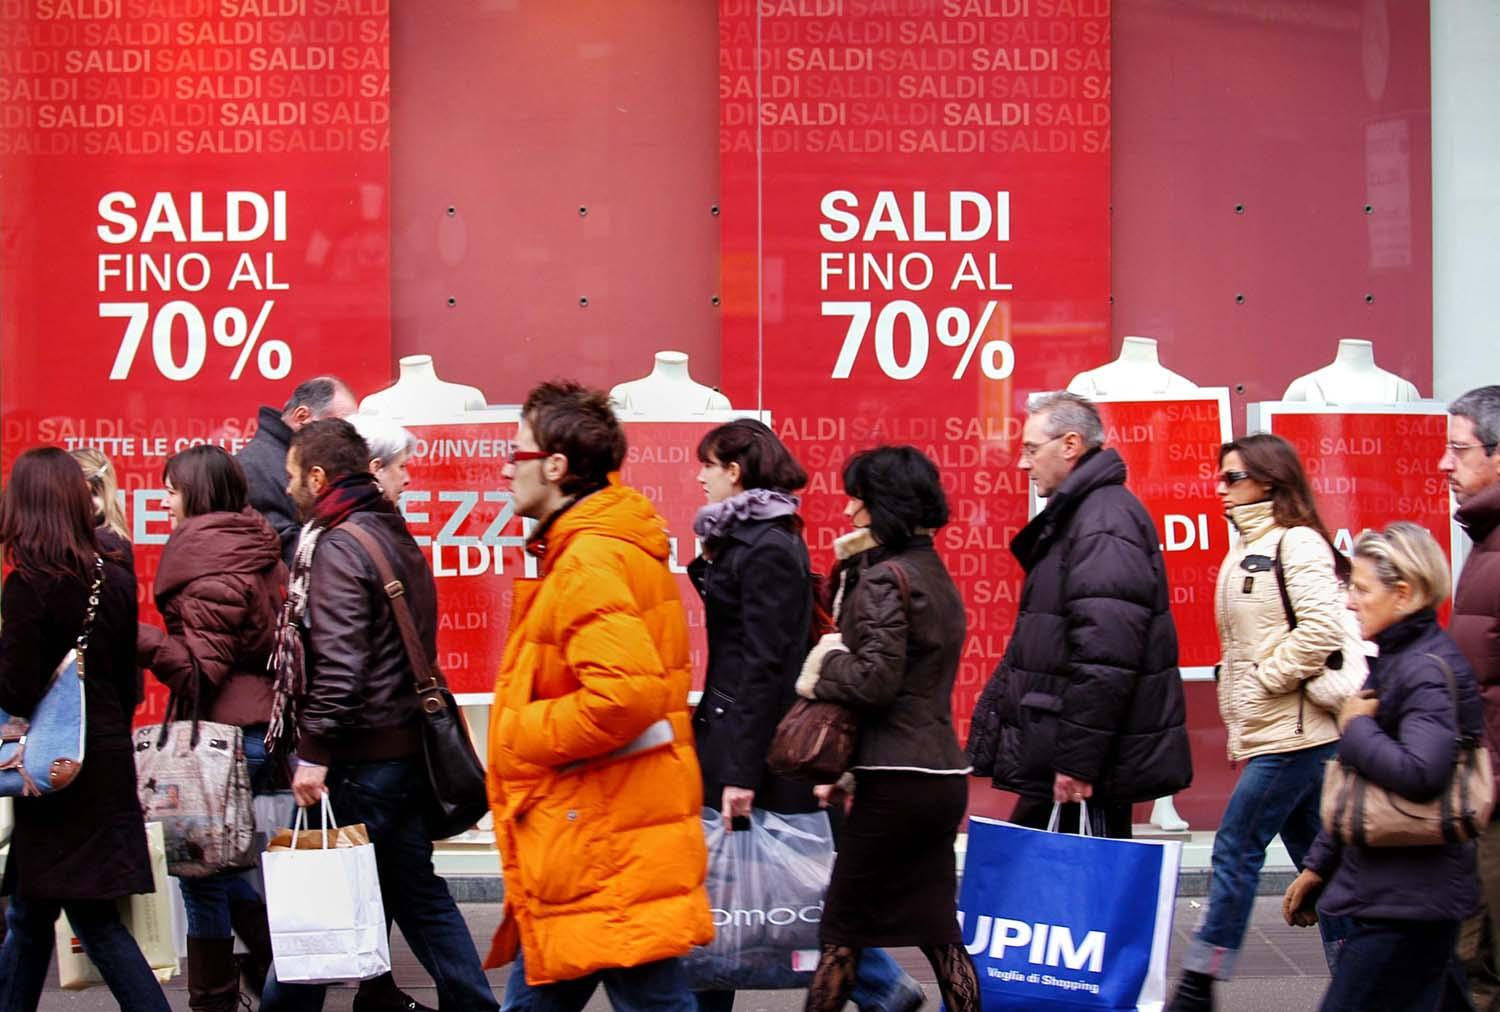 Saldi al via in Campania, commercianti ottimisti: \